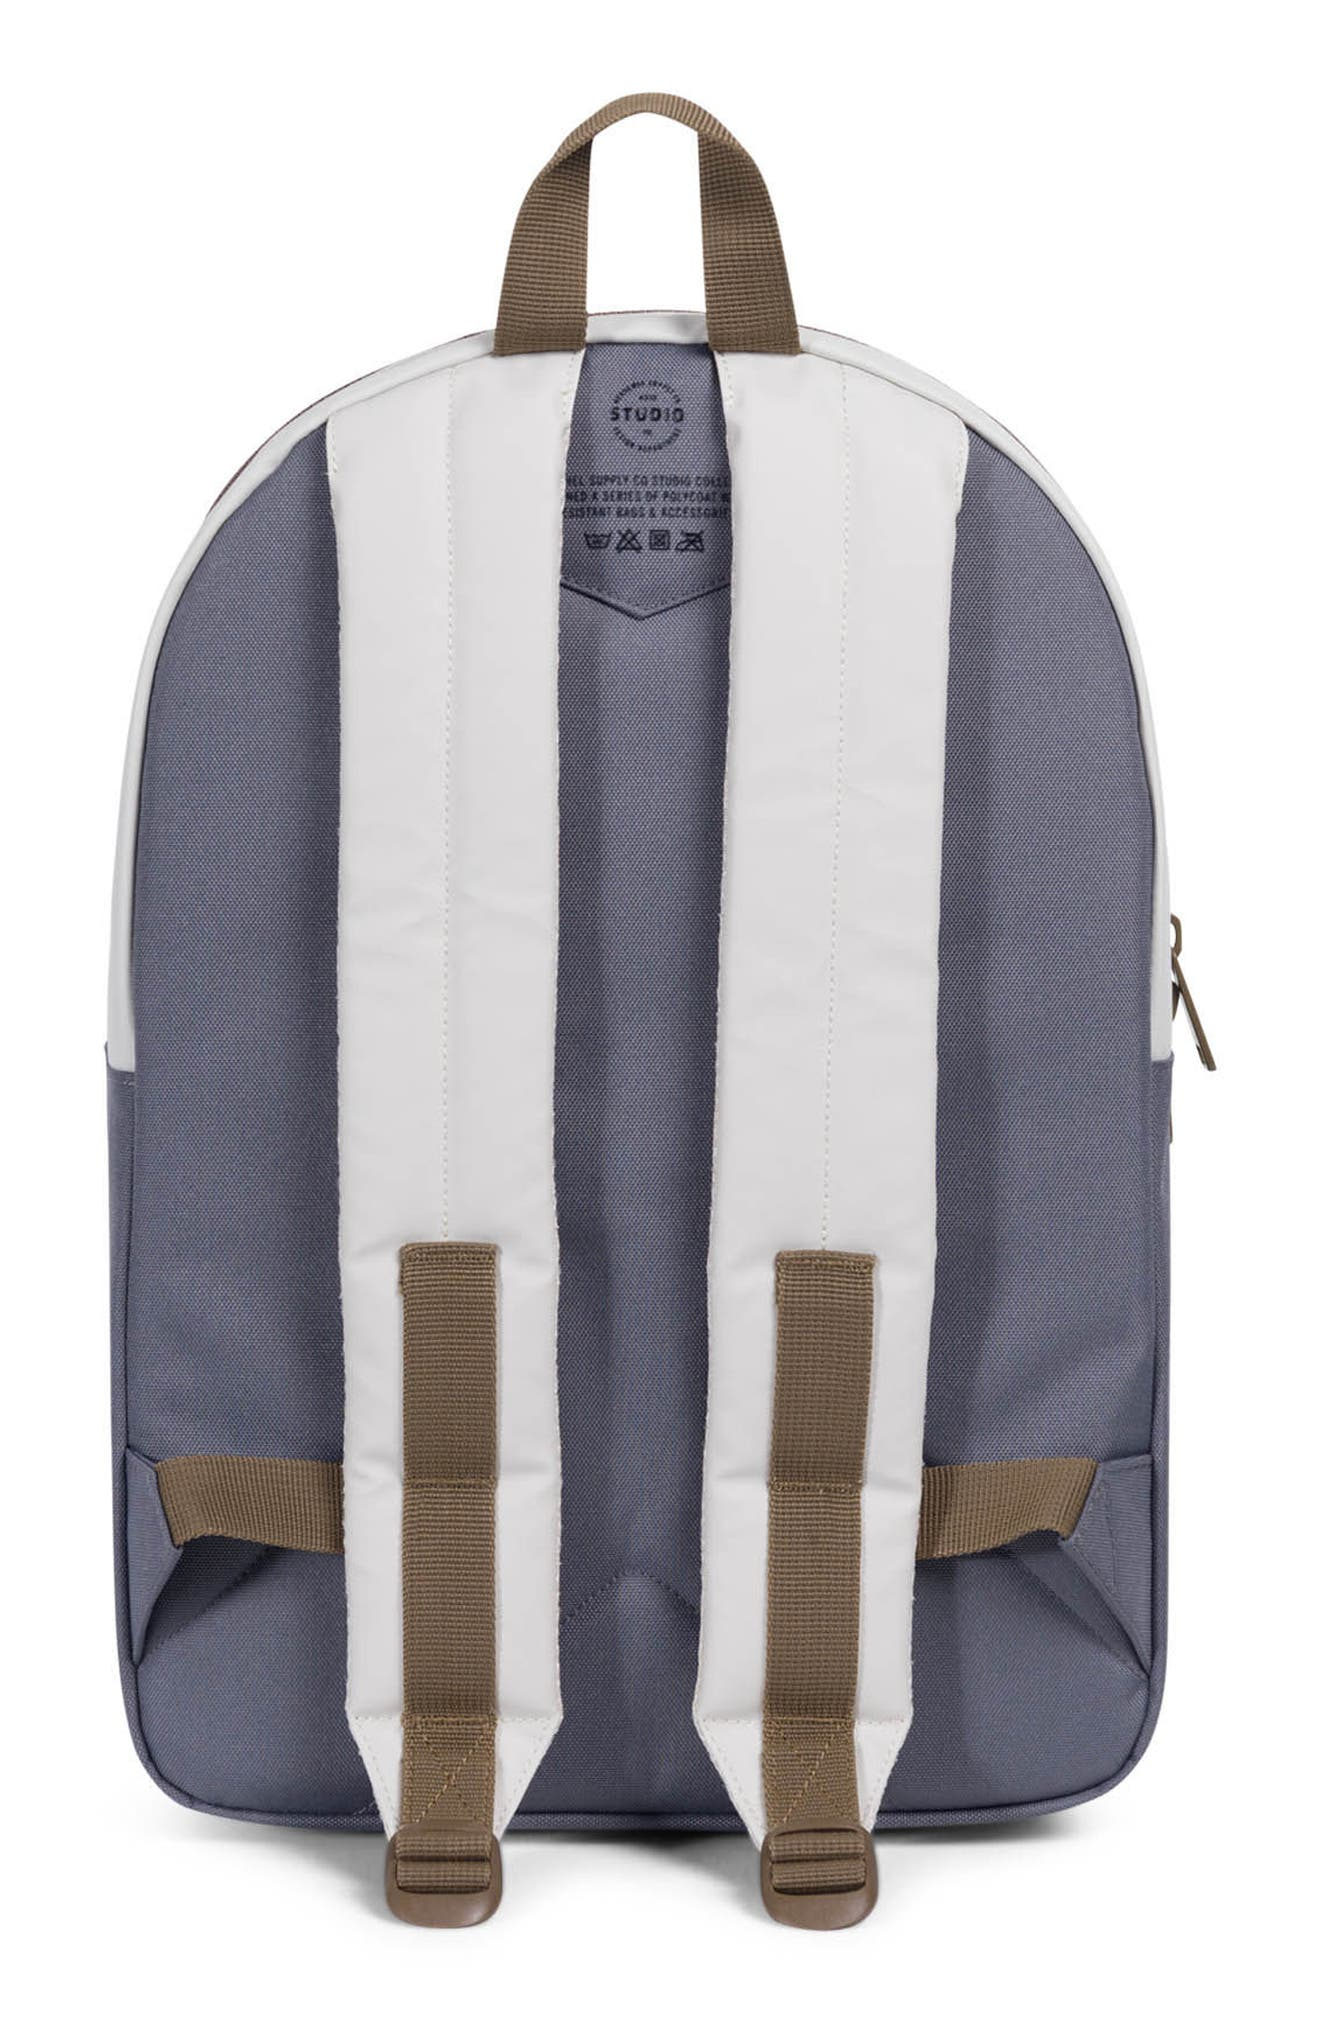 Winlaw Polycoat Studio Backpack,                             Alternate thumbnail 11, color,